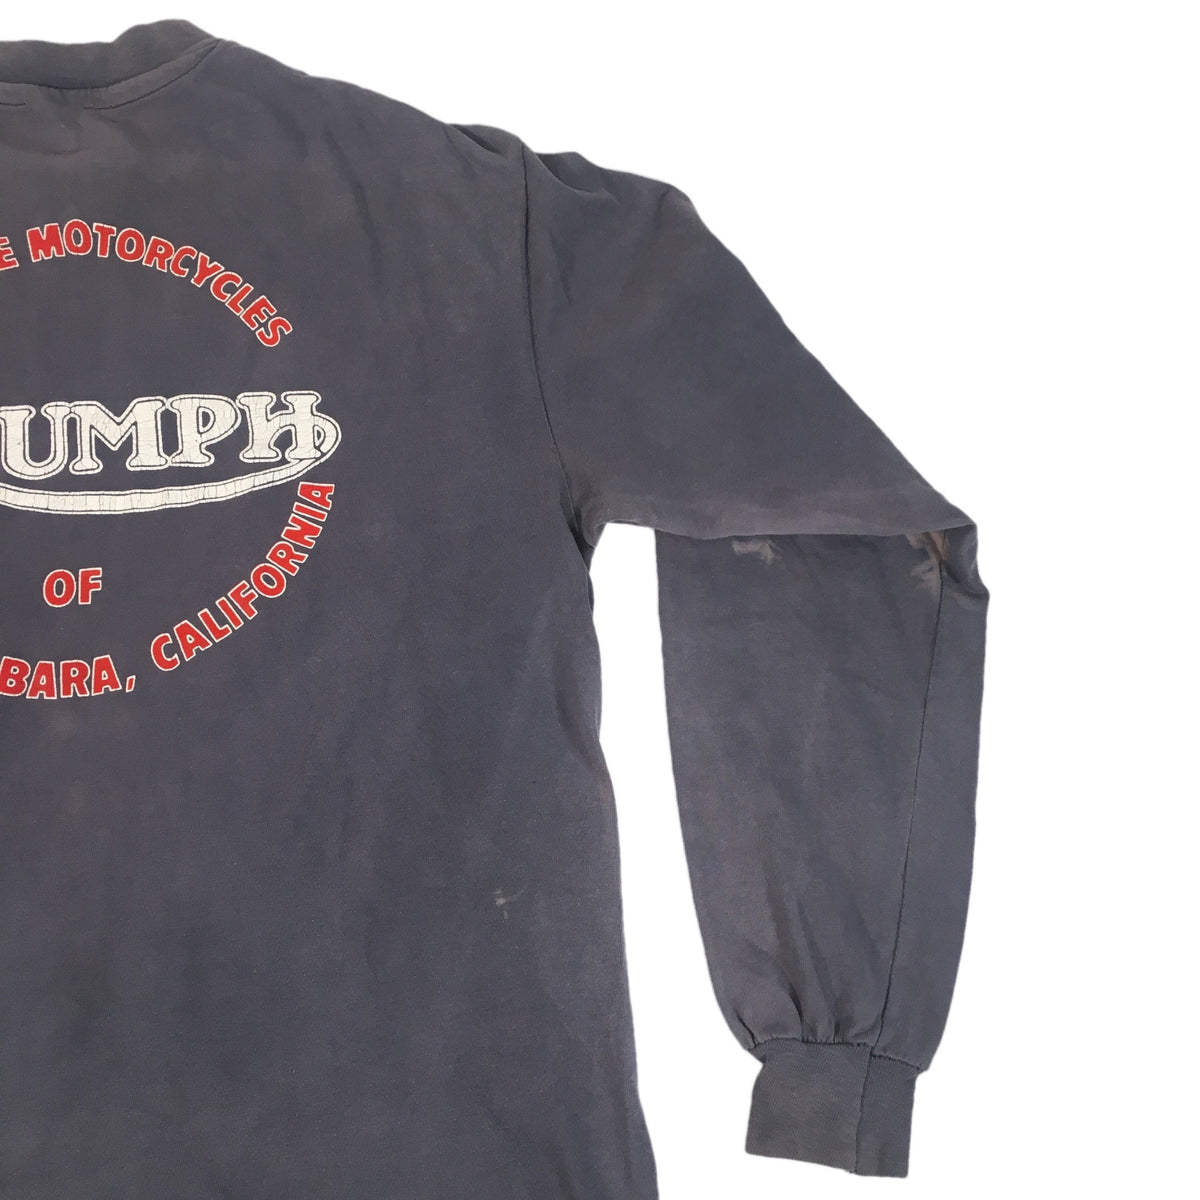 "Vintage Triumph Motorcycles ""Santa Barbara"" Long Sleeve"